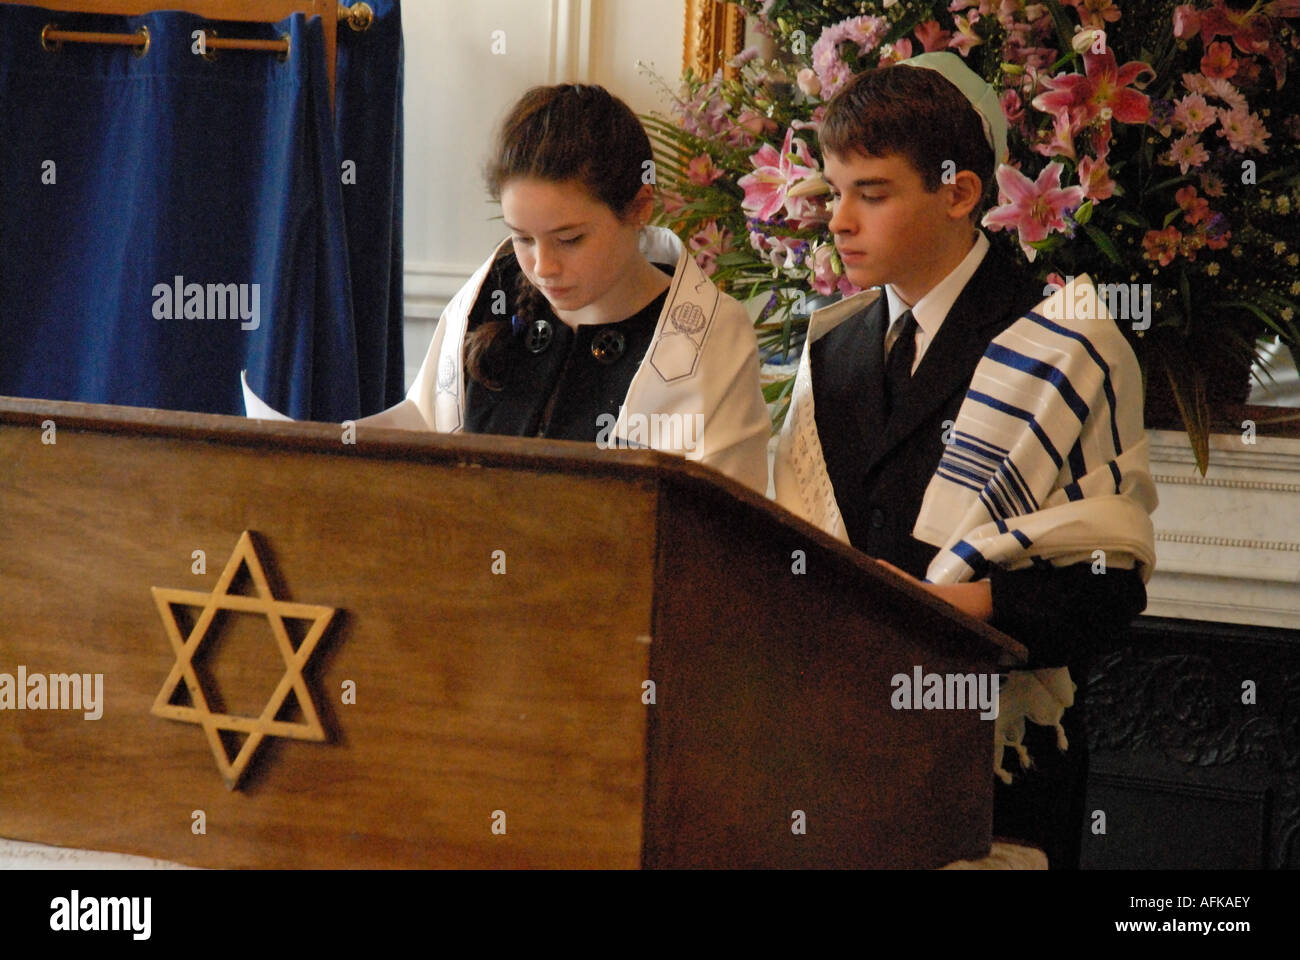 Batmitvah girl and Barmitzvah boy (twins) lead the ceremony at their Bar/Bat mitzvah - Stock Image